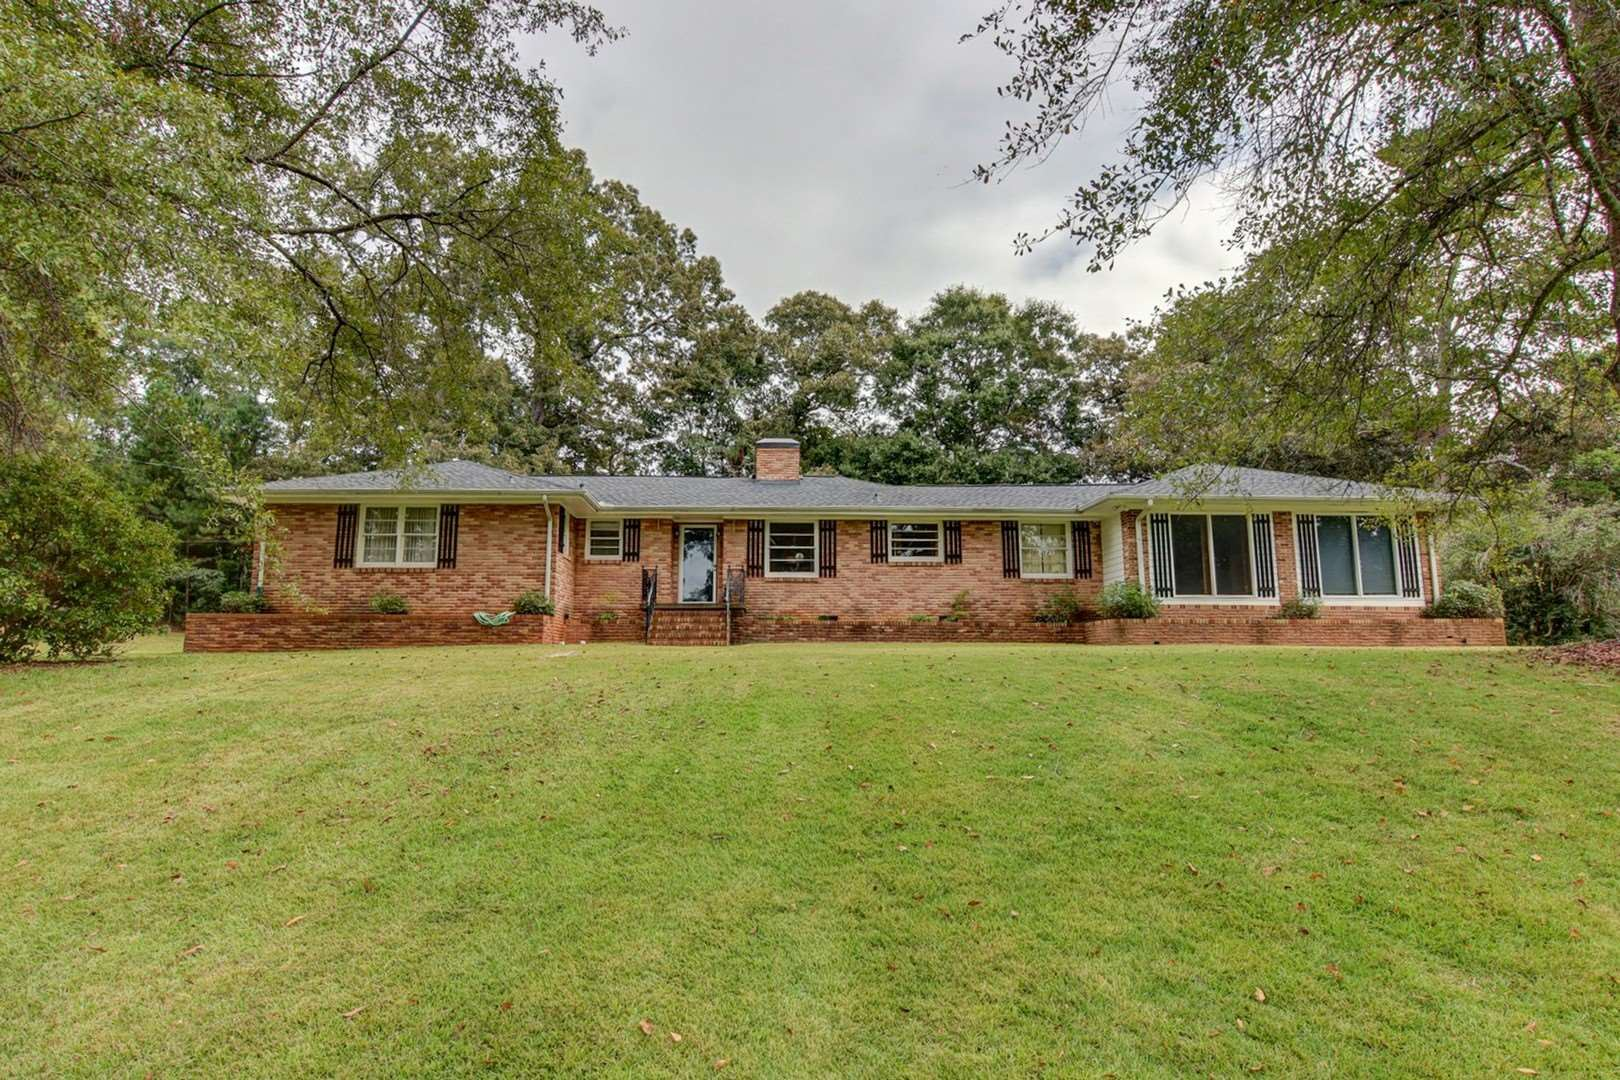 622 Brookwood Ave, Jackson, GA 30233 - MLS#: 8865980